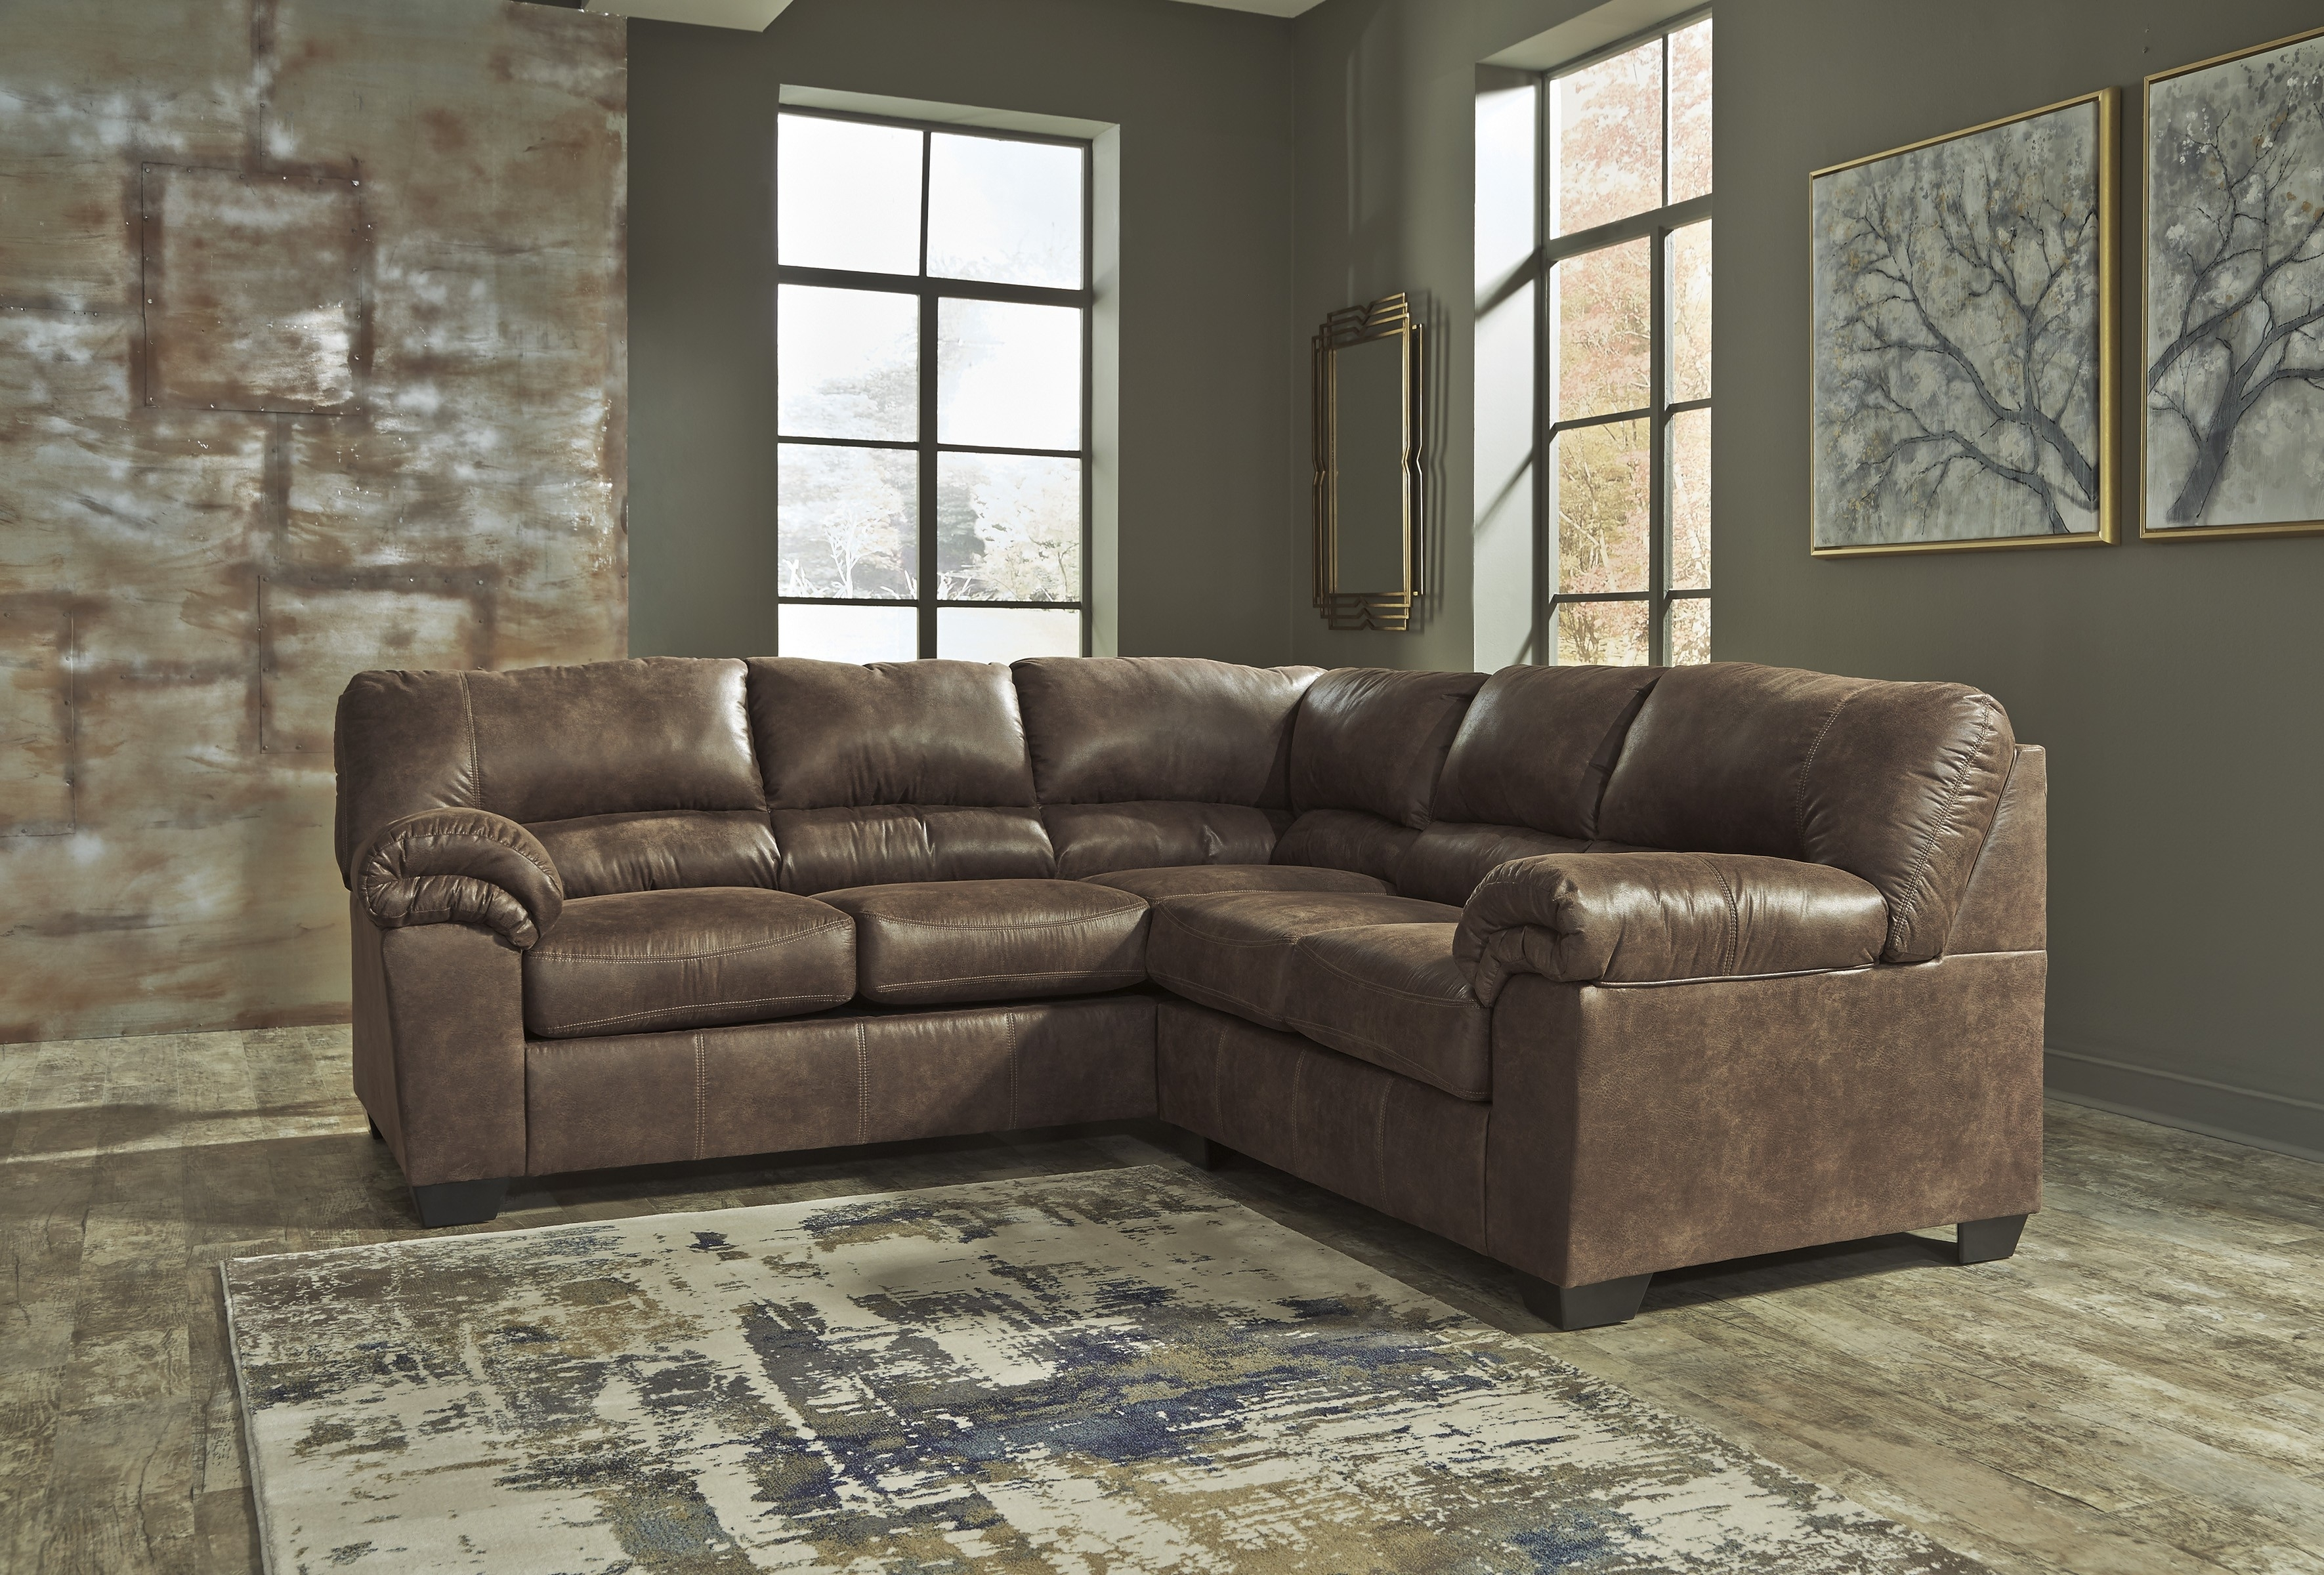 Laf Sofa Raf Loveseat | Baci Living Room With Regard To Turdur 2 Piece Sectionals With Raf Loveseat (Image 13 of 25)